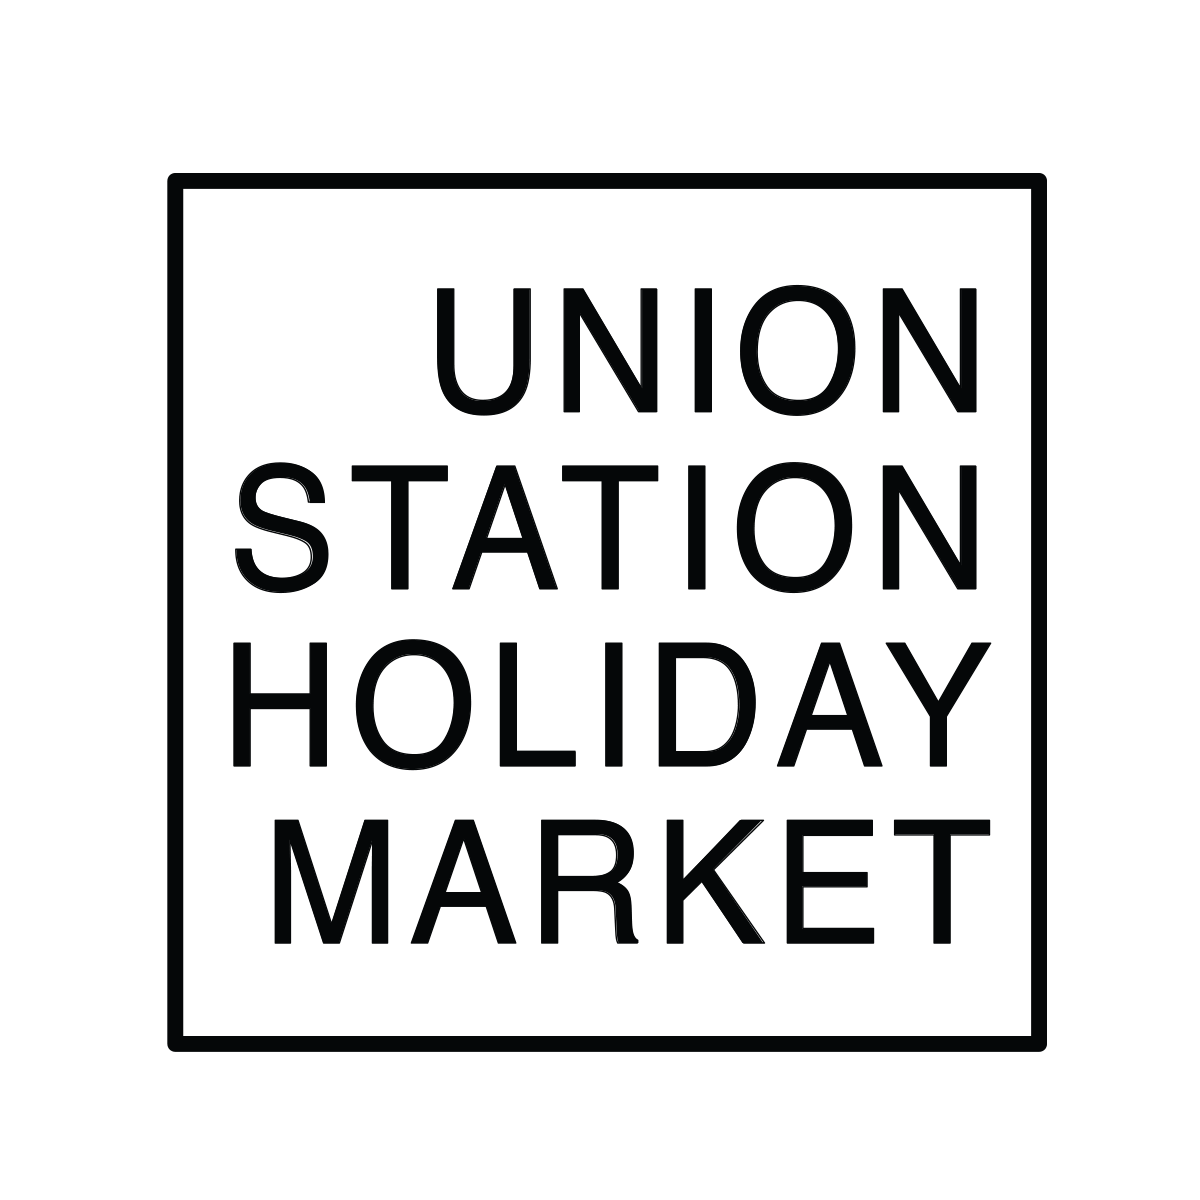 Union Station Holiday Market #USHM